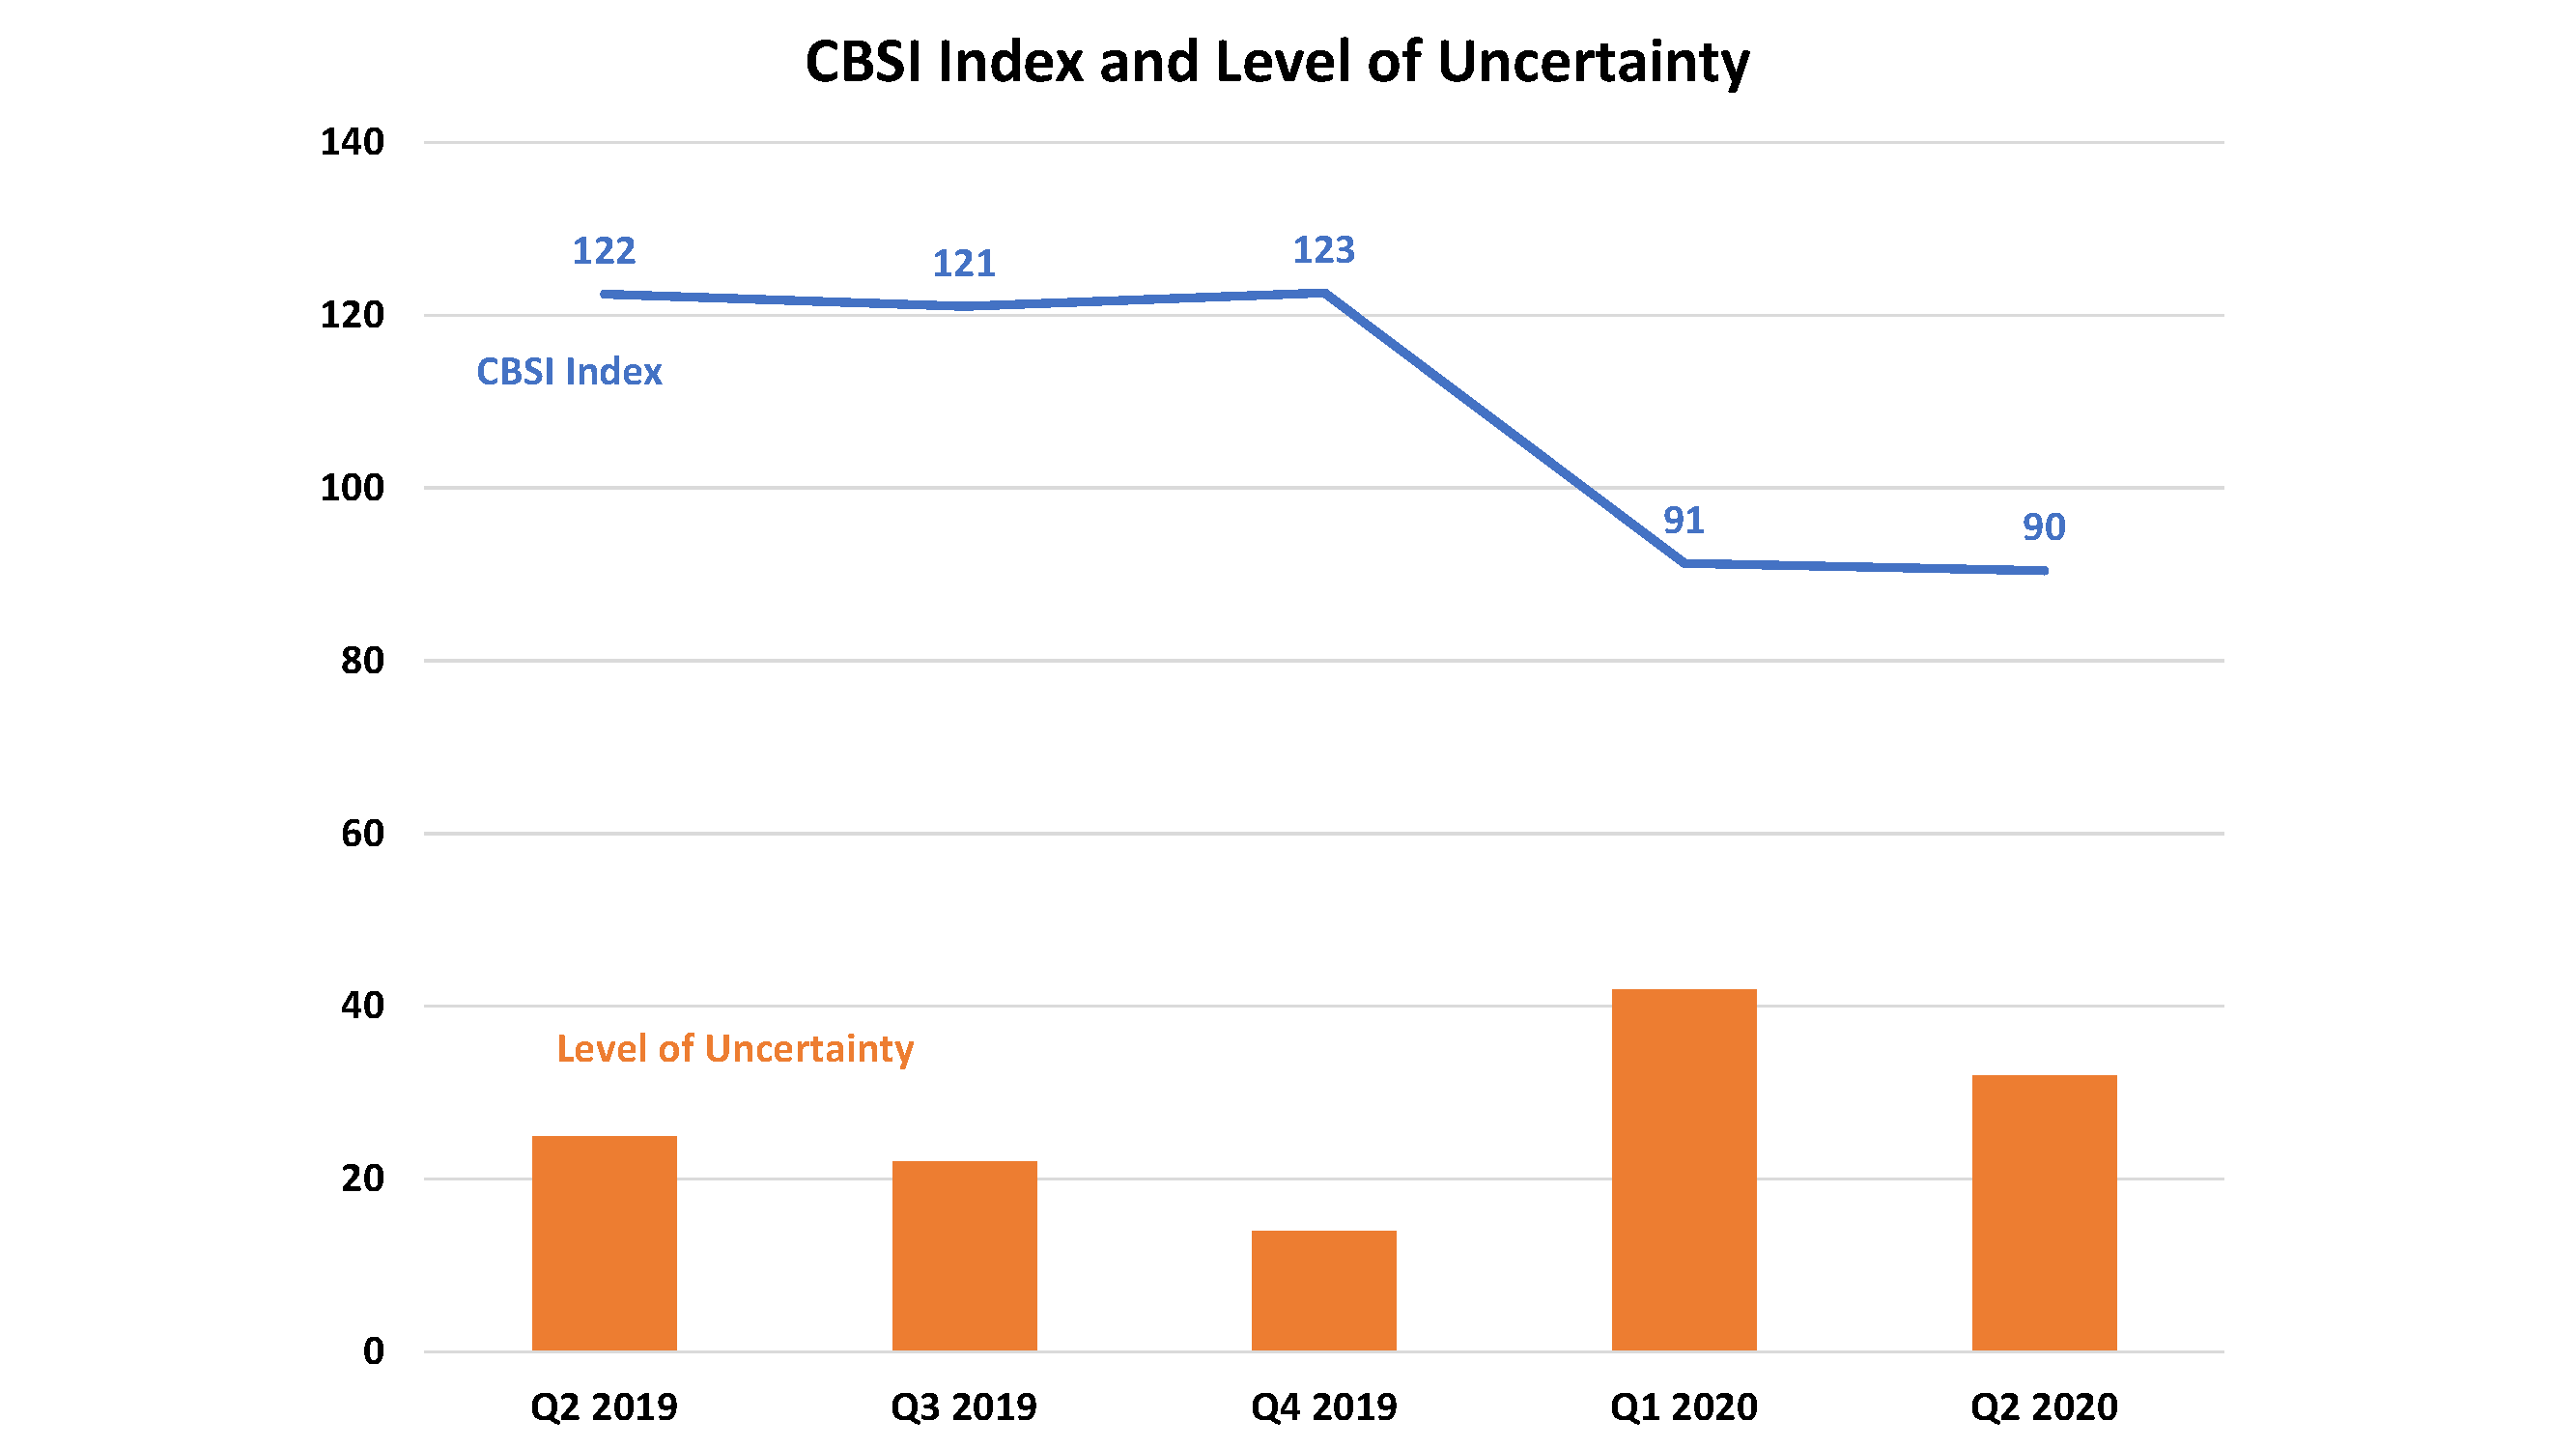 CBSI Index and Level of Uncertainty